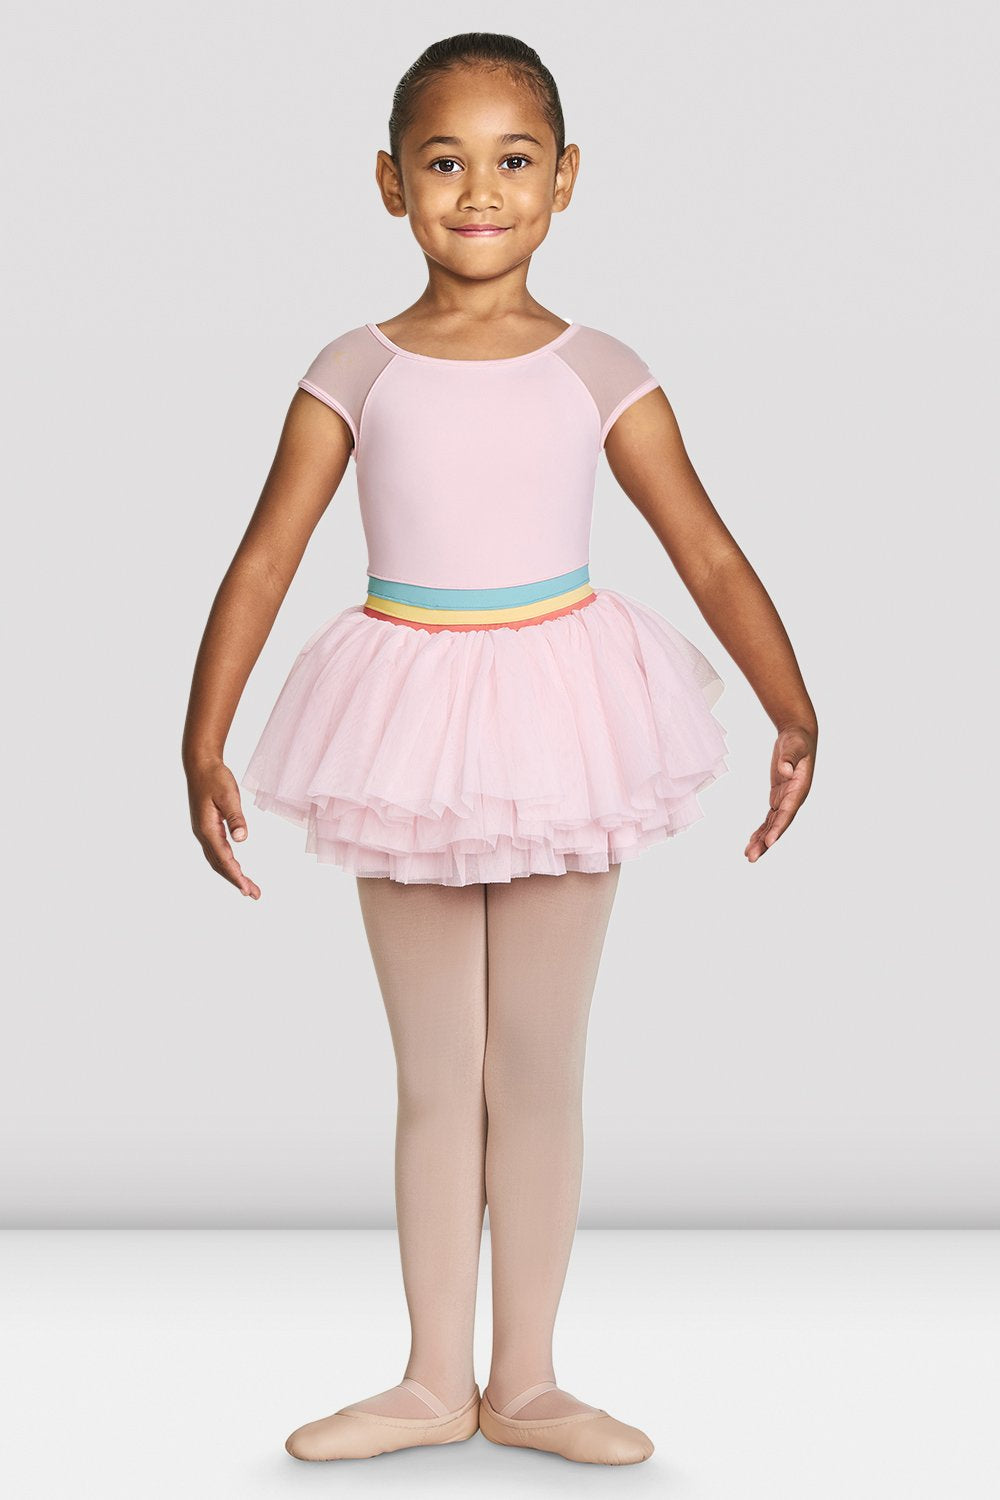 Girls Mabel Cap Sleeve Tutu Leotard - BLOCH US